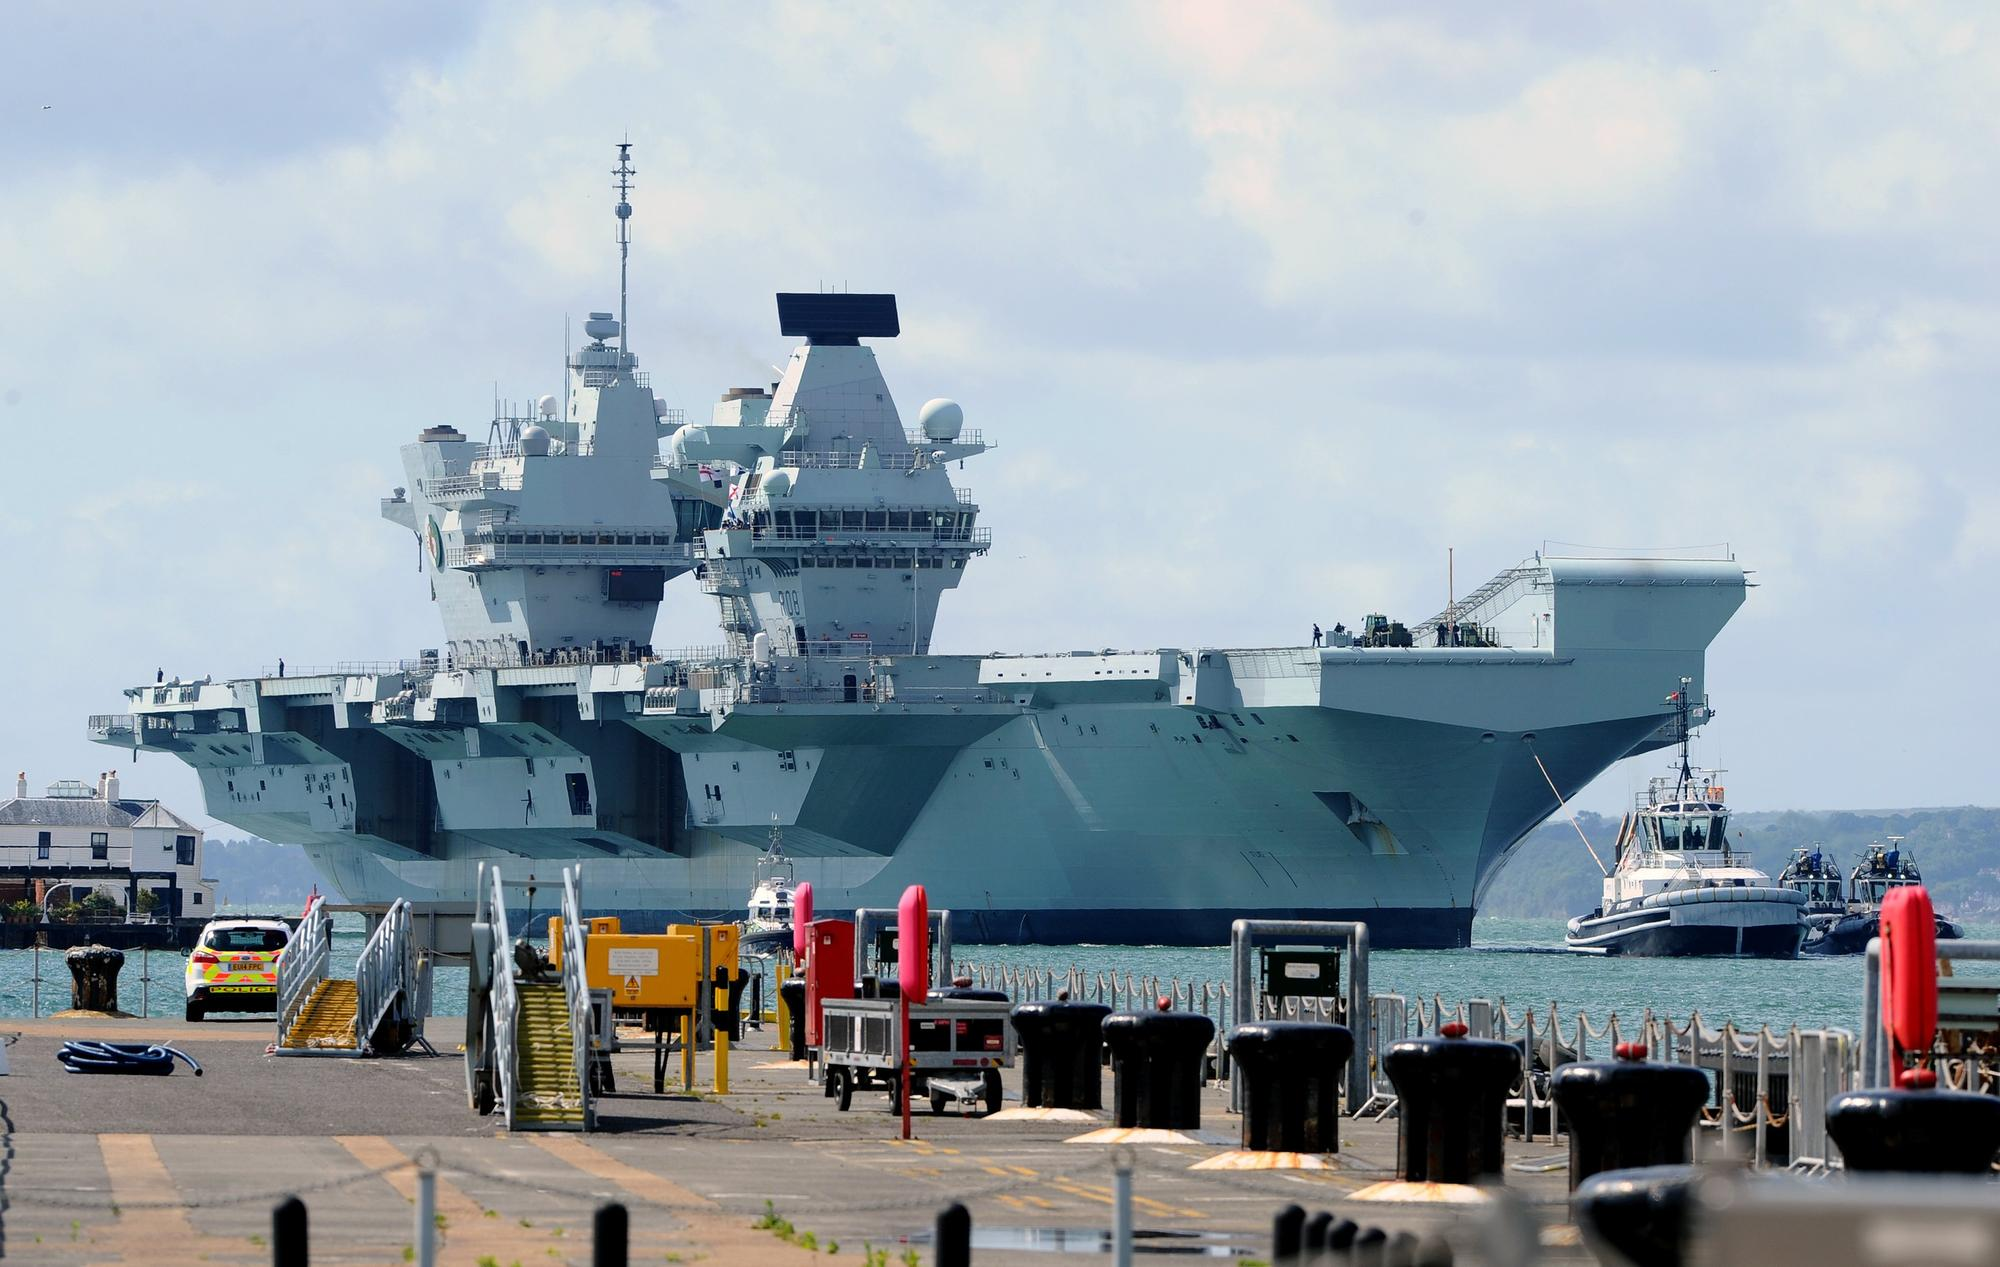 Navy says 100 sailors in isolation after fresh Covid outbreak on aircraft carrier